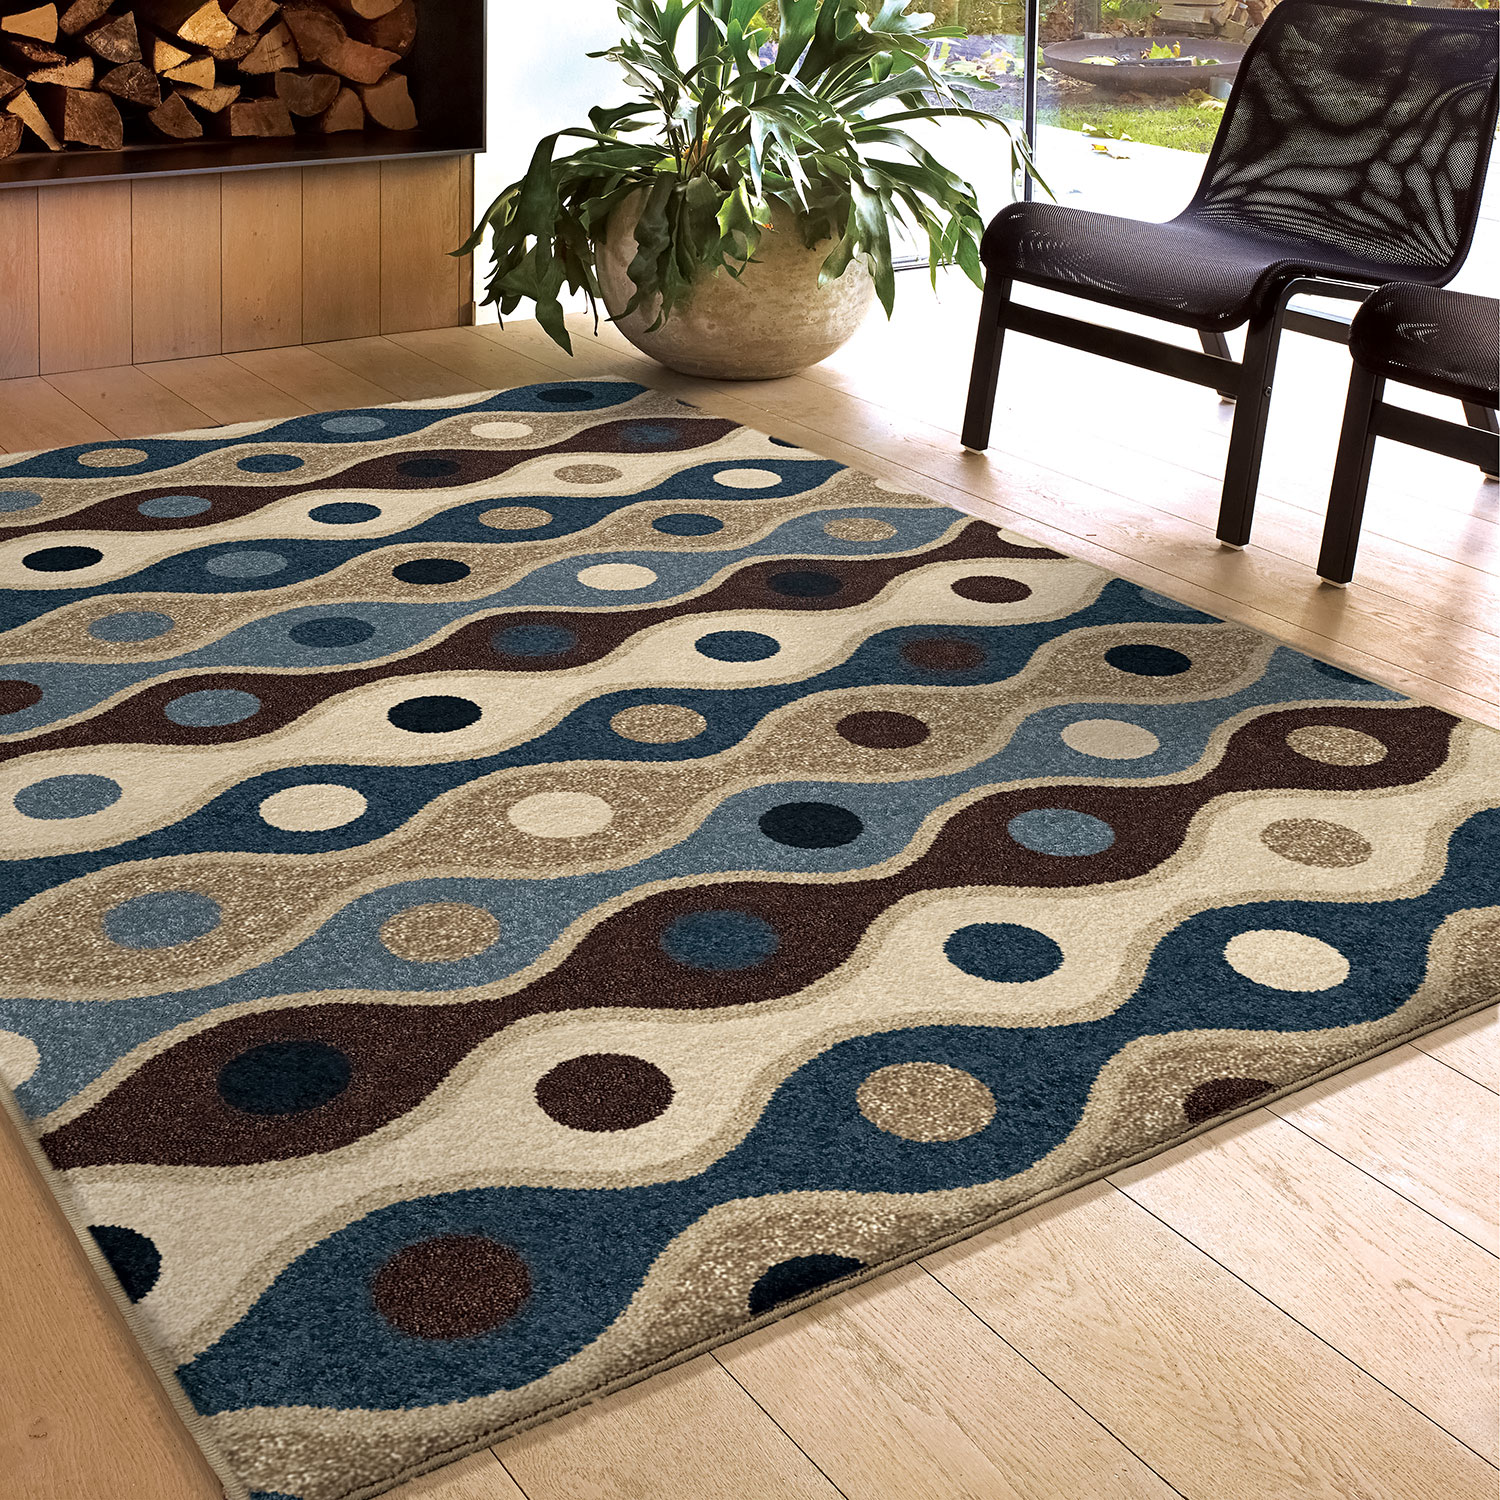 Rugs - Iris Blue Area Rug – 5' x 8'